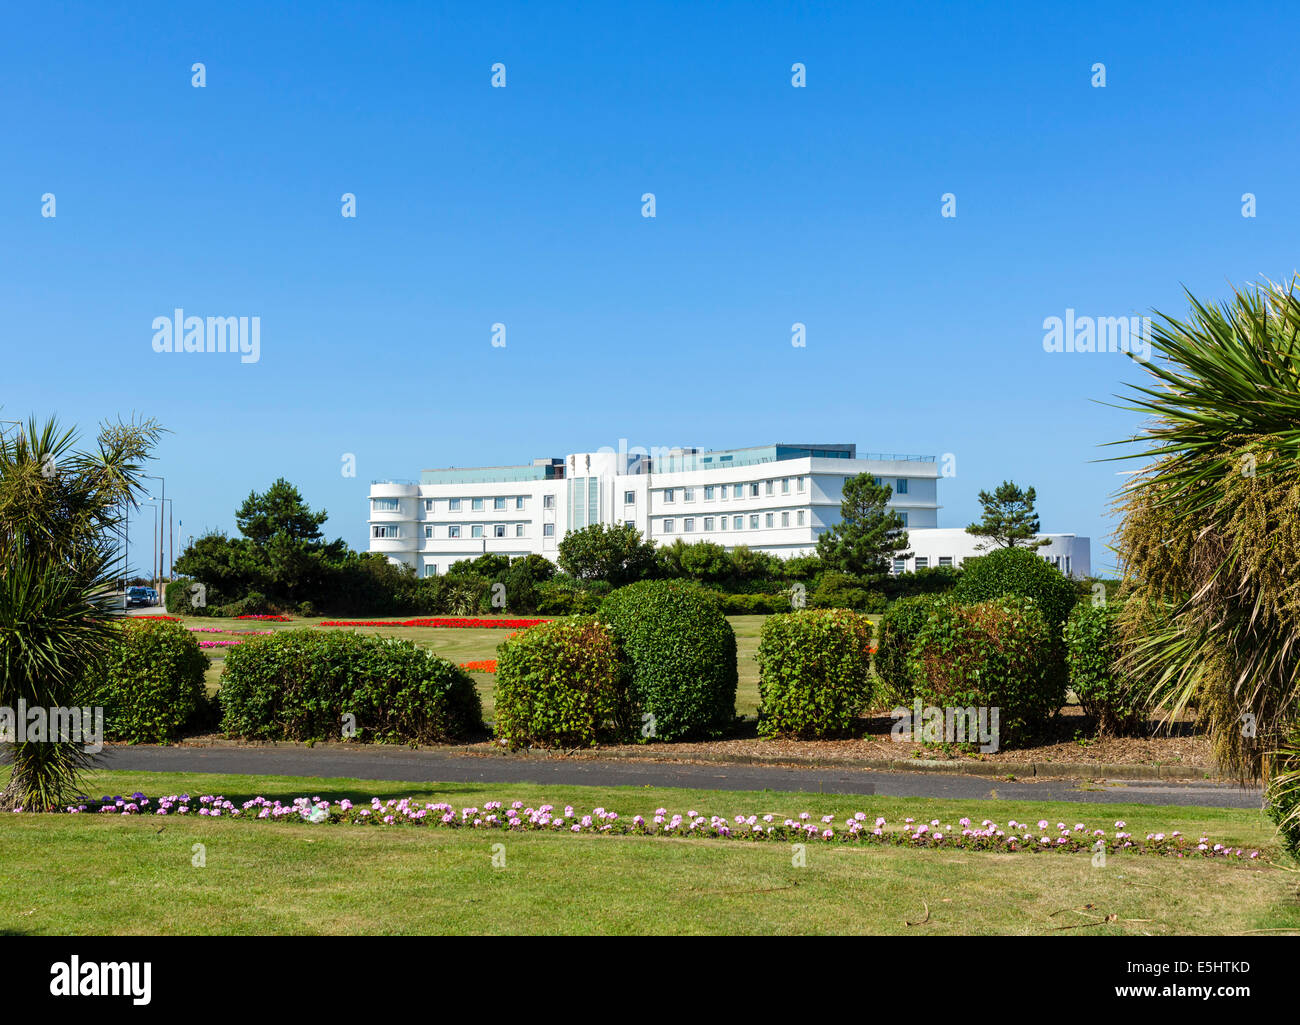 The Art Deco Midland Hotel on the promenade in the seaside resort of Morecambe, Lancashire, UK - Stock Image